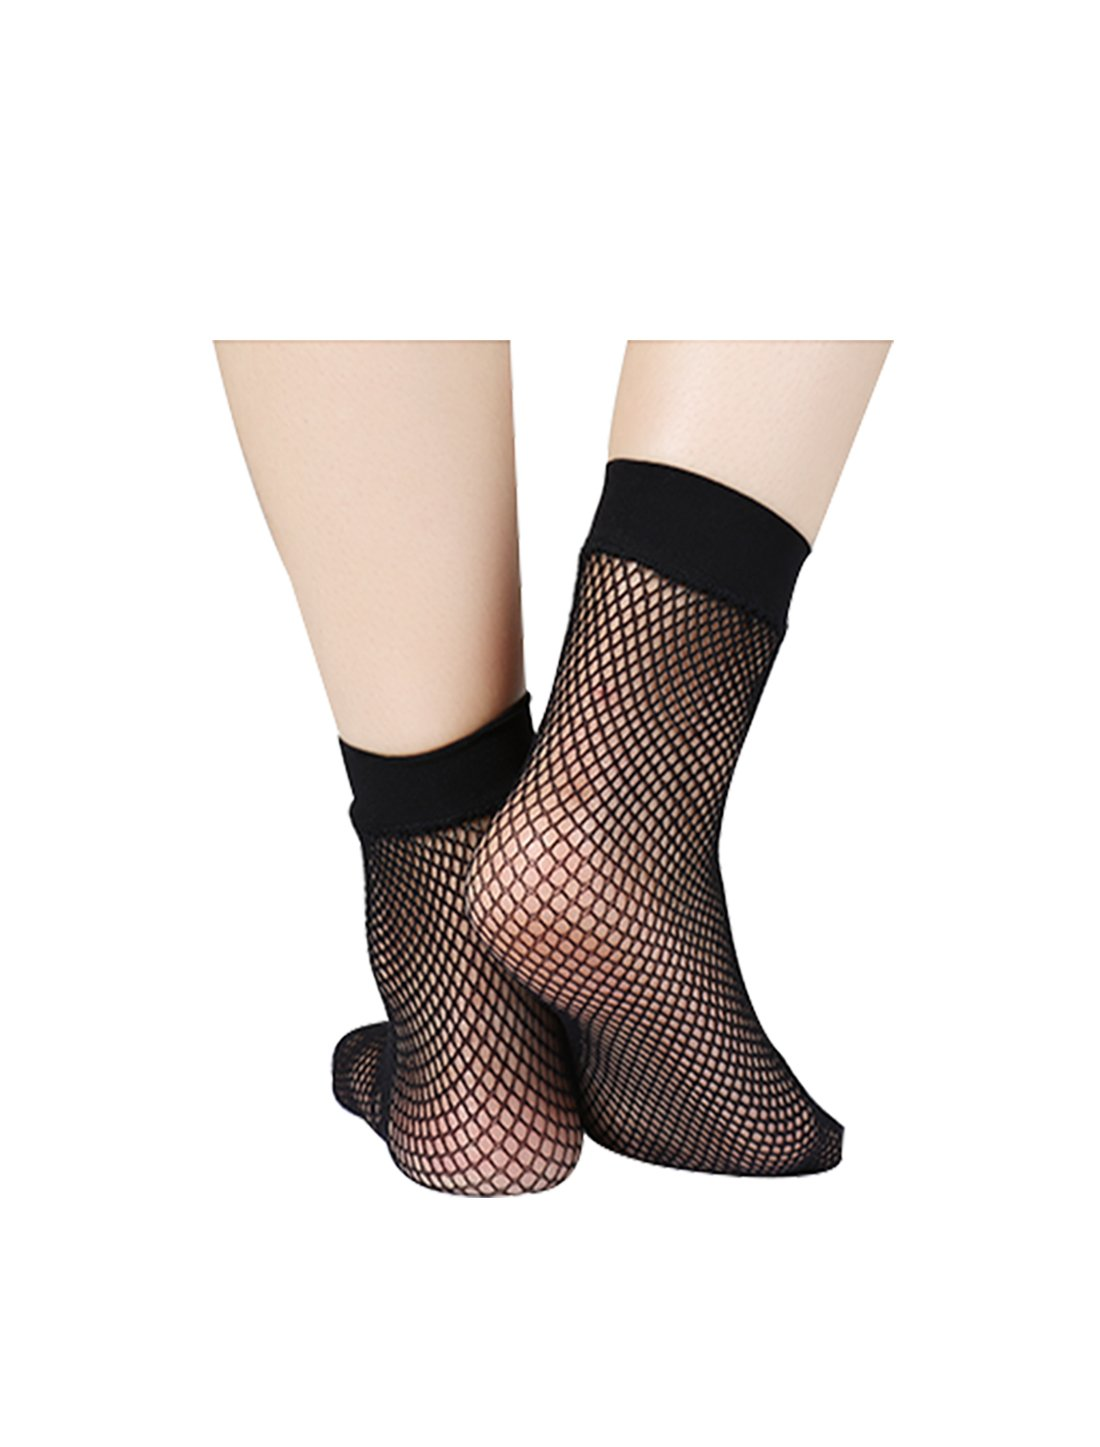 uxcell Women 10 Pairs Trendy Fishnet Ankle High Lace Small Net Short Socks Black